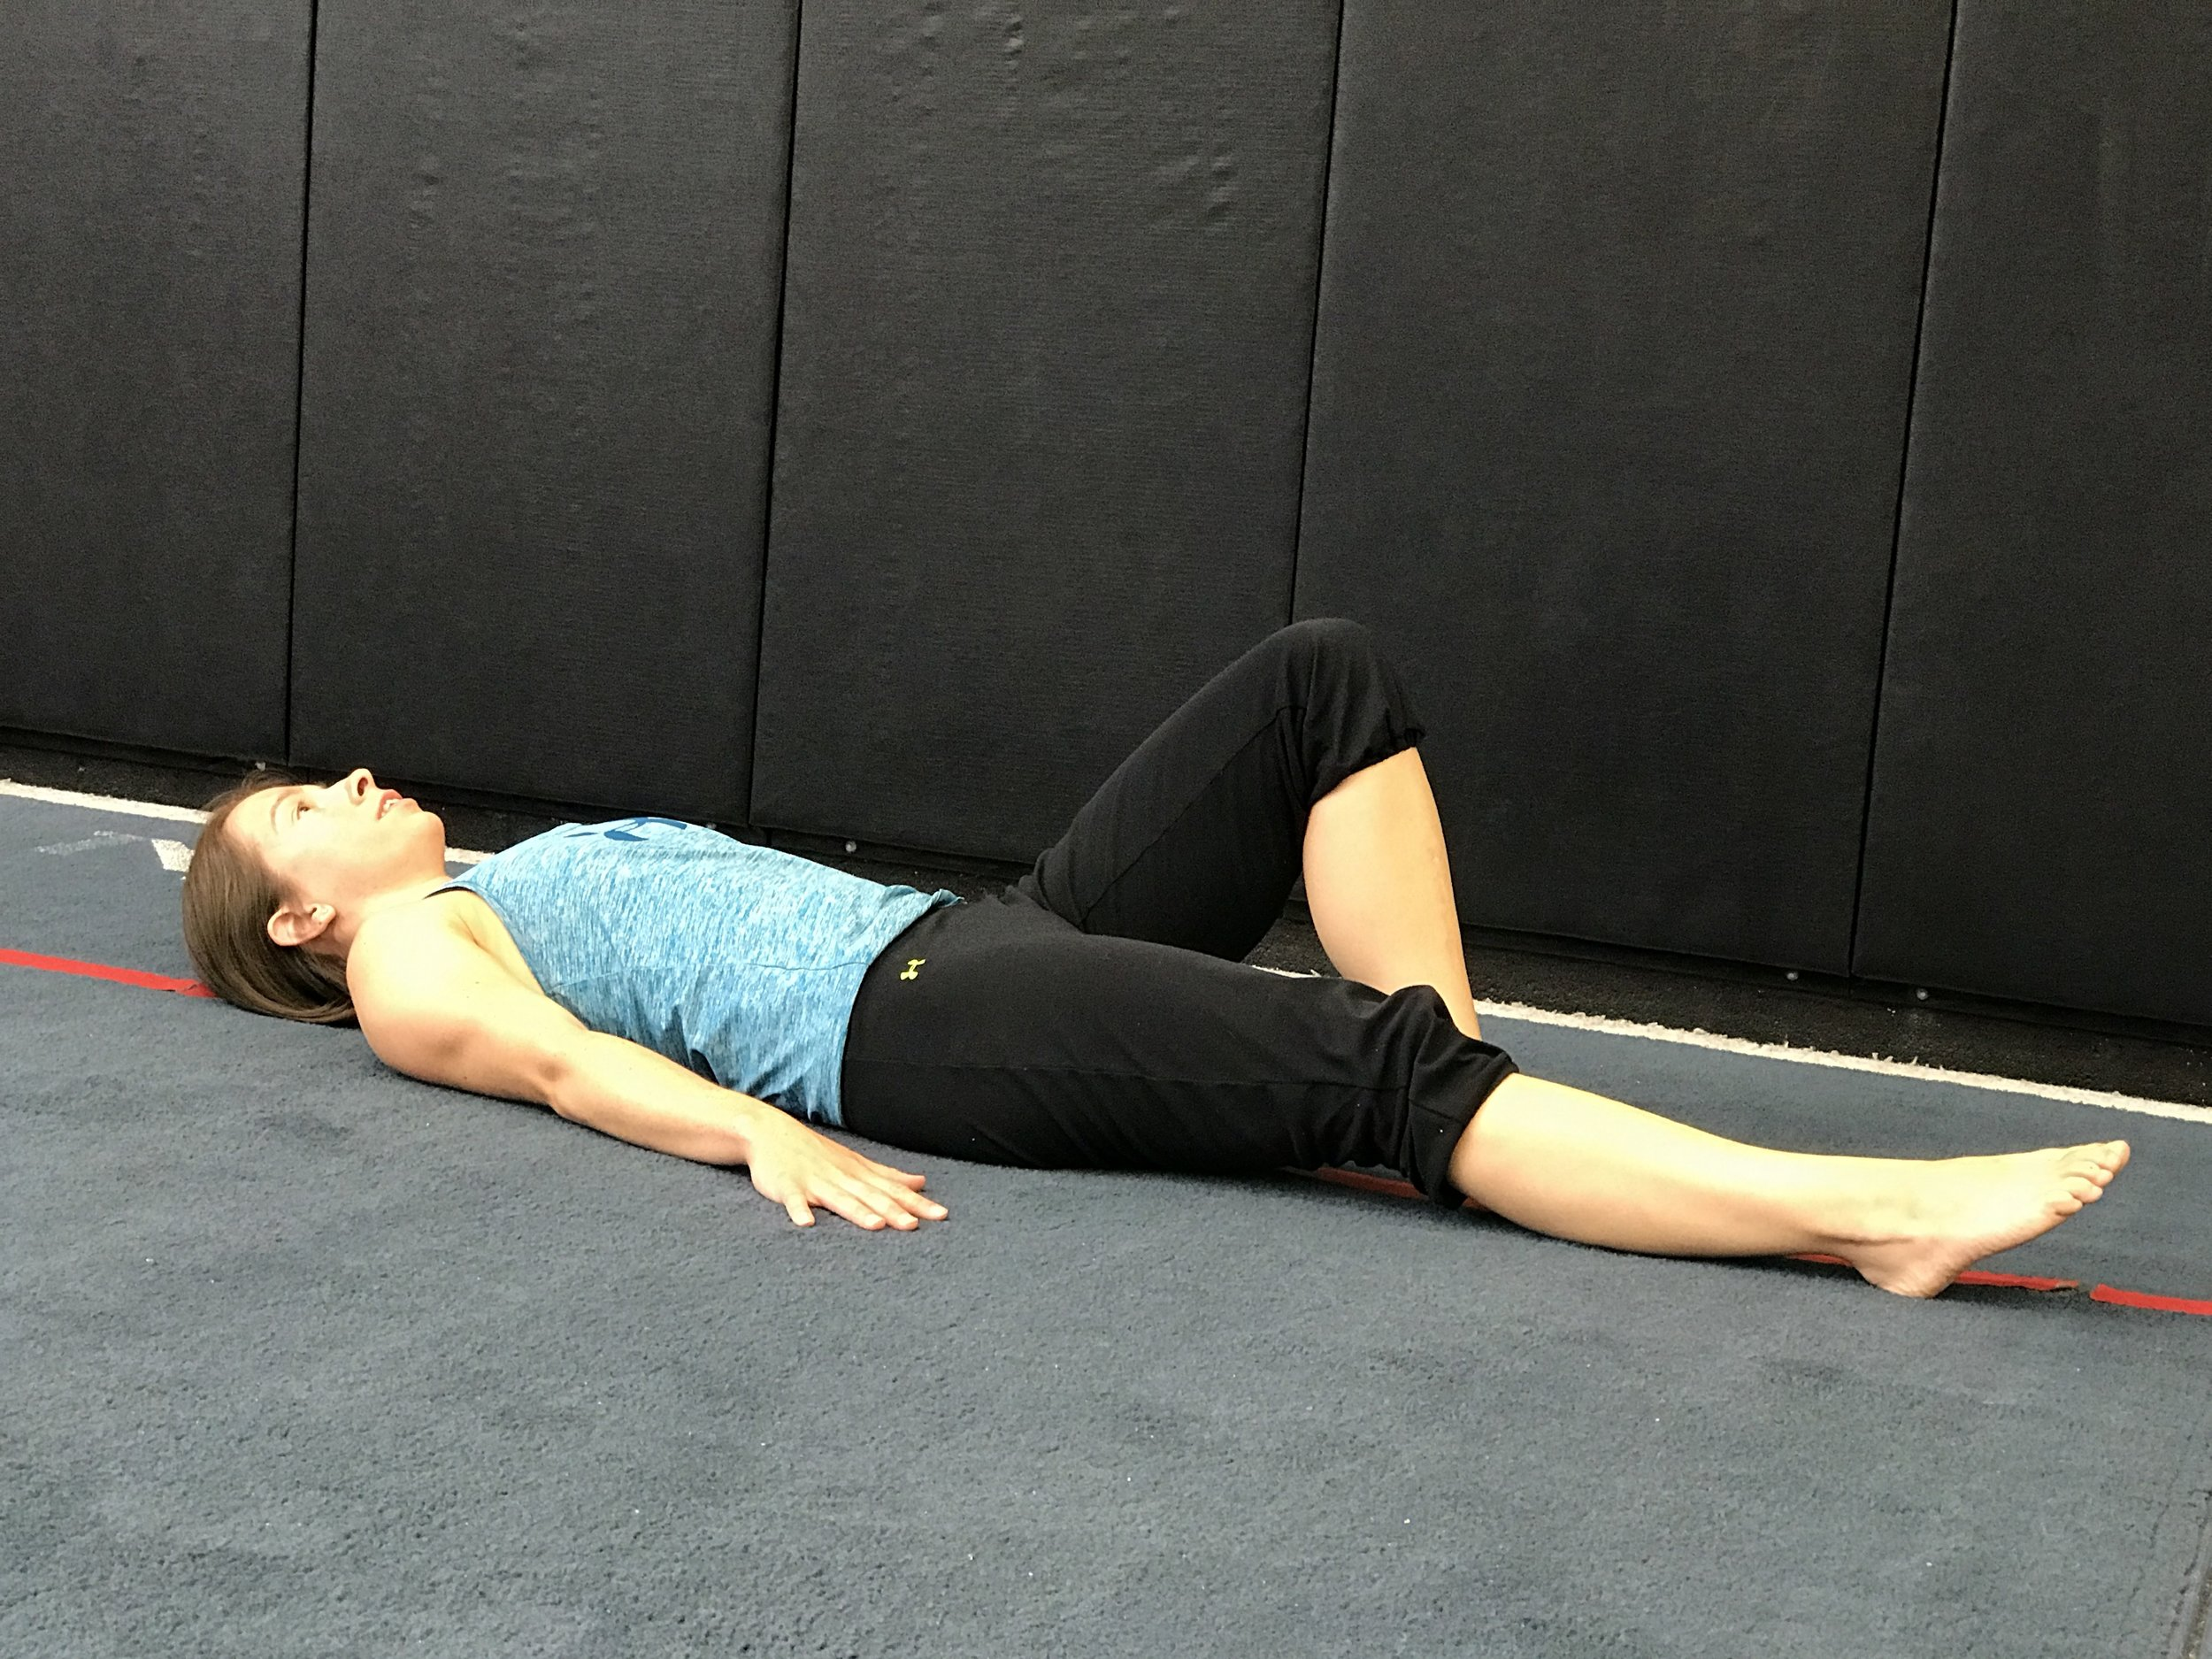 Starting position: Laying with the knees bent and feet flat.  Hands on the floor next to you for support/balance. Extend one leg (straighten that knee). Tighten the core (think abdominal brace/kegel).